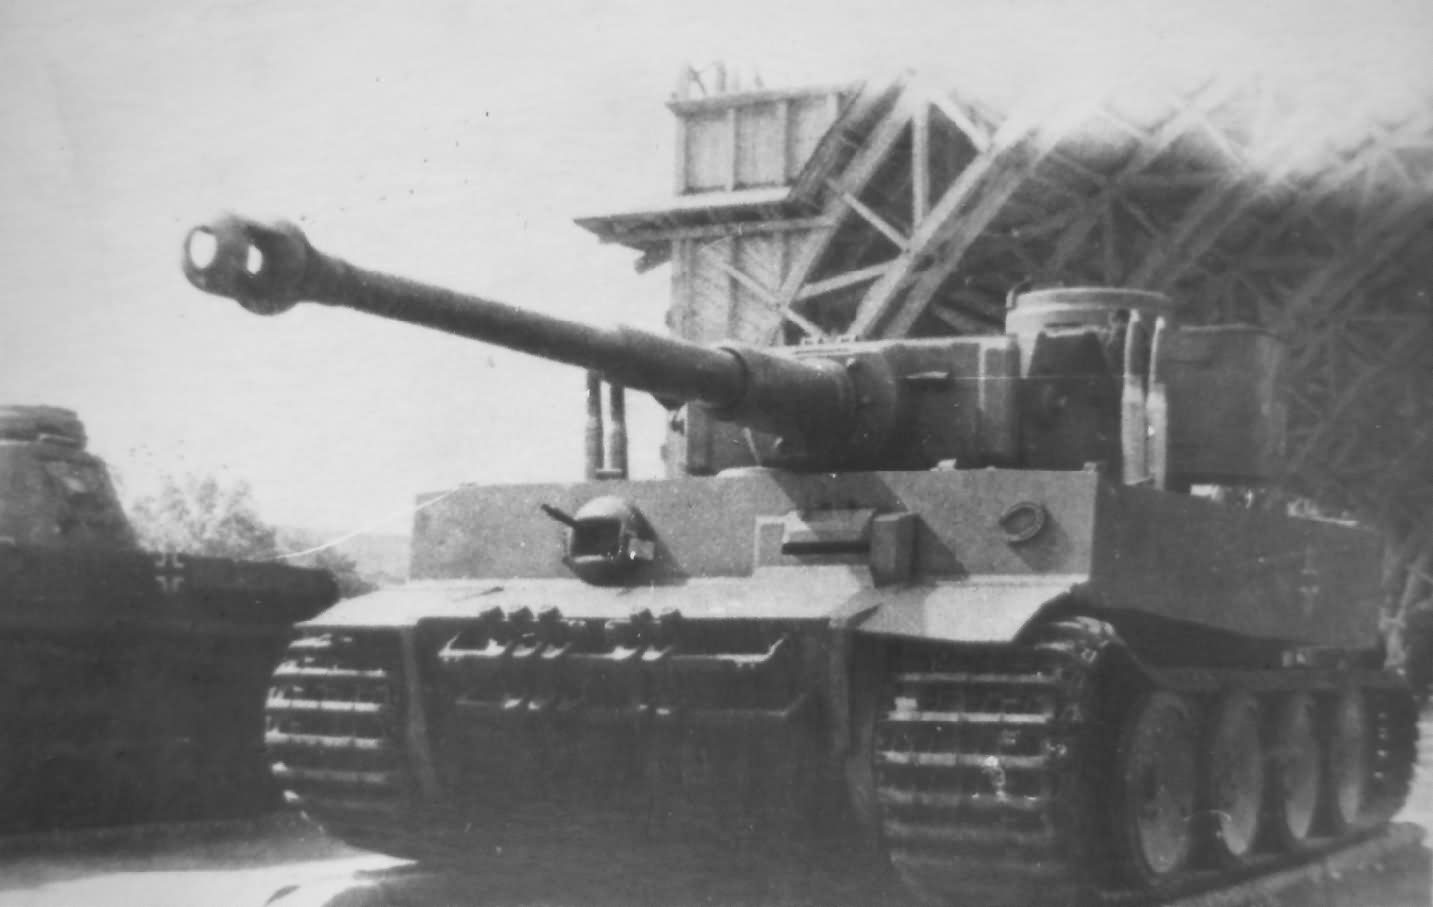 Tiger I tank number 100 of Schwere Panzer-Abteilung 502, front view